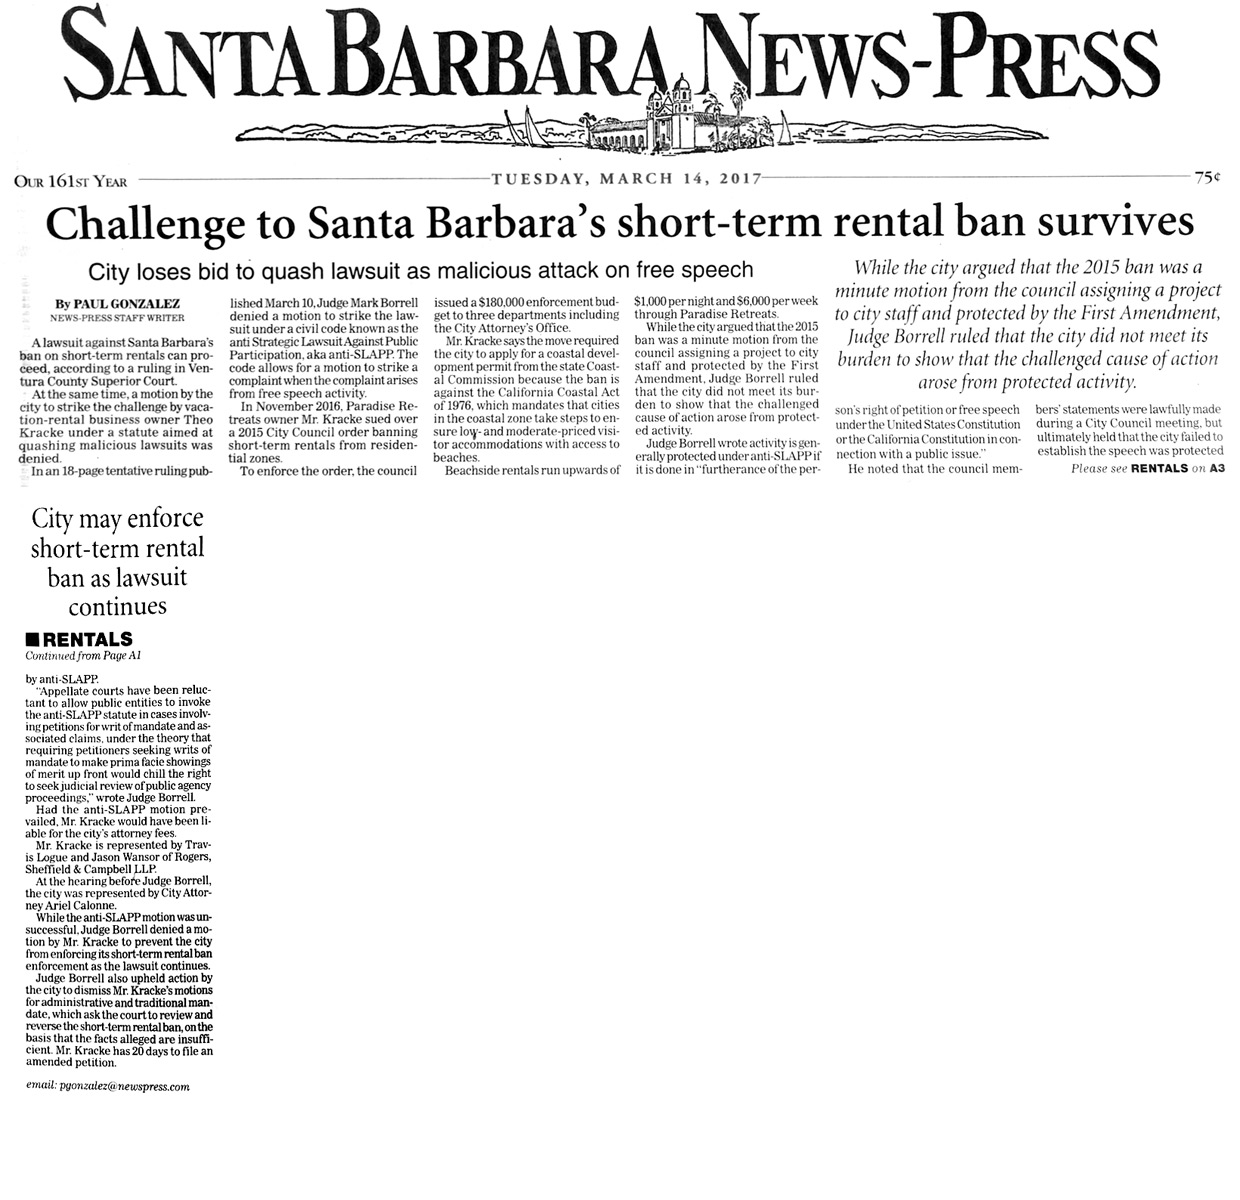 Challenge to Santa Barbara's Short-term Rental Ban Survives